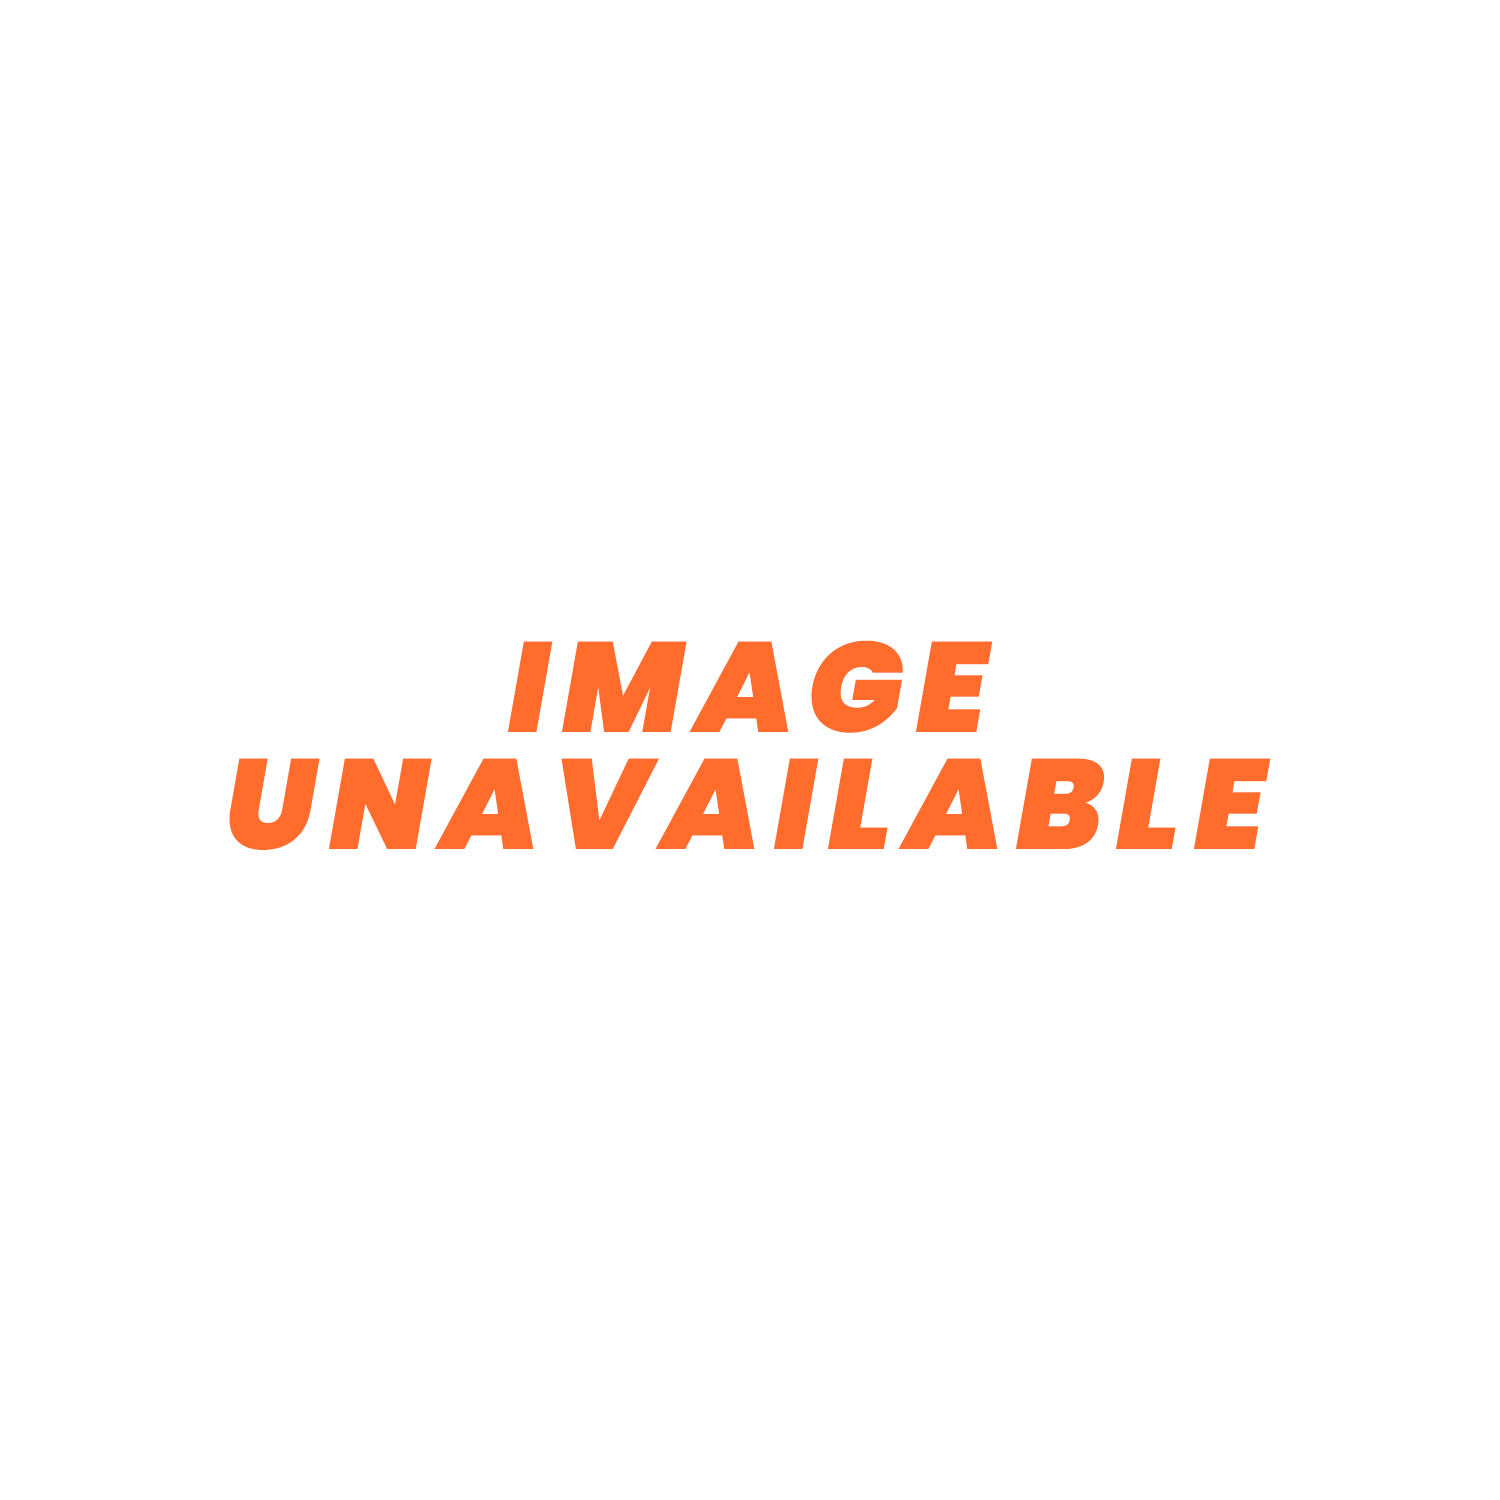 standard blade fuse box with leds 6 way rh t7design co uk blade fuse box halfords blade fuse box holder